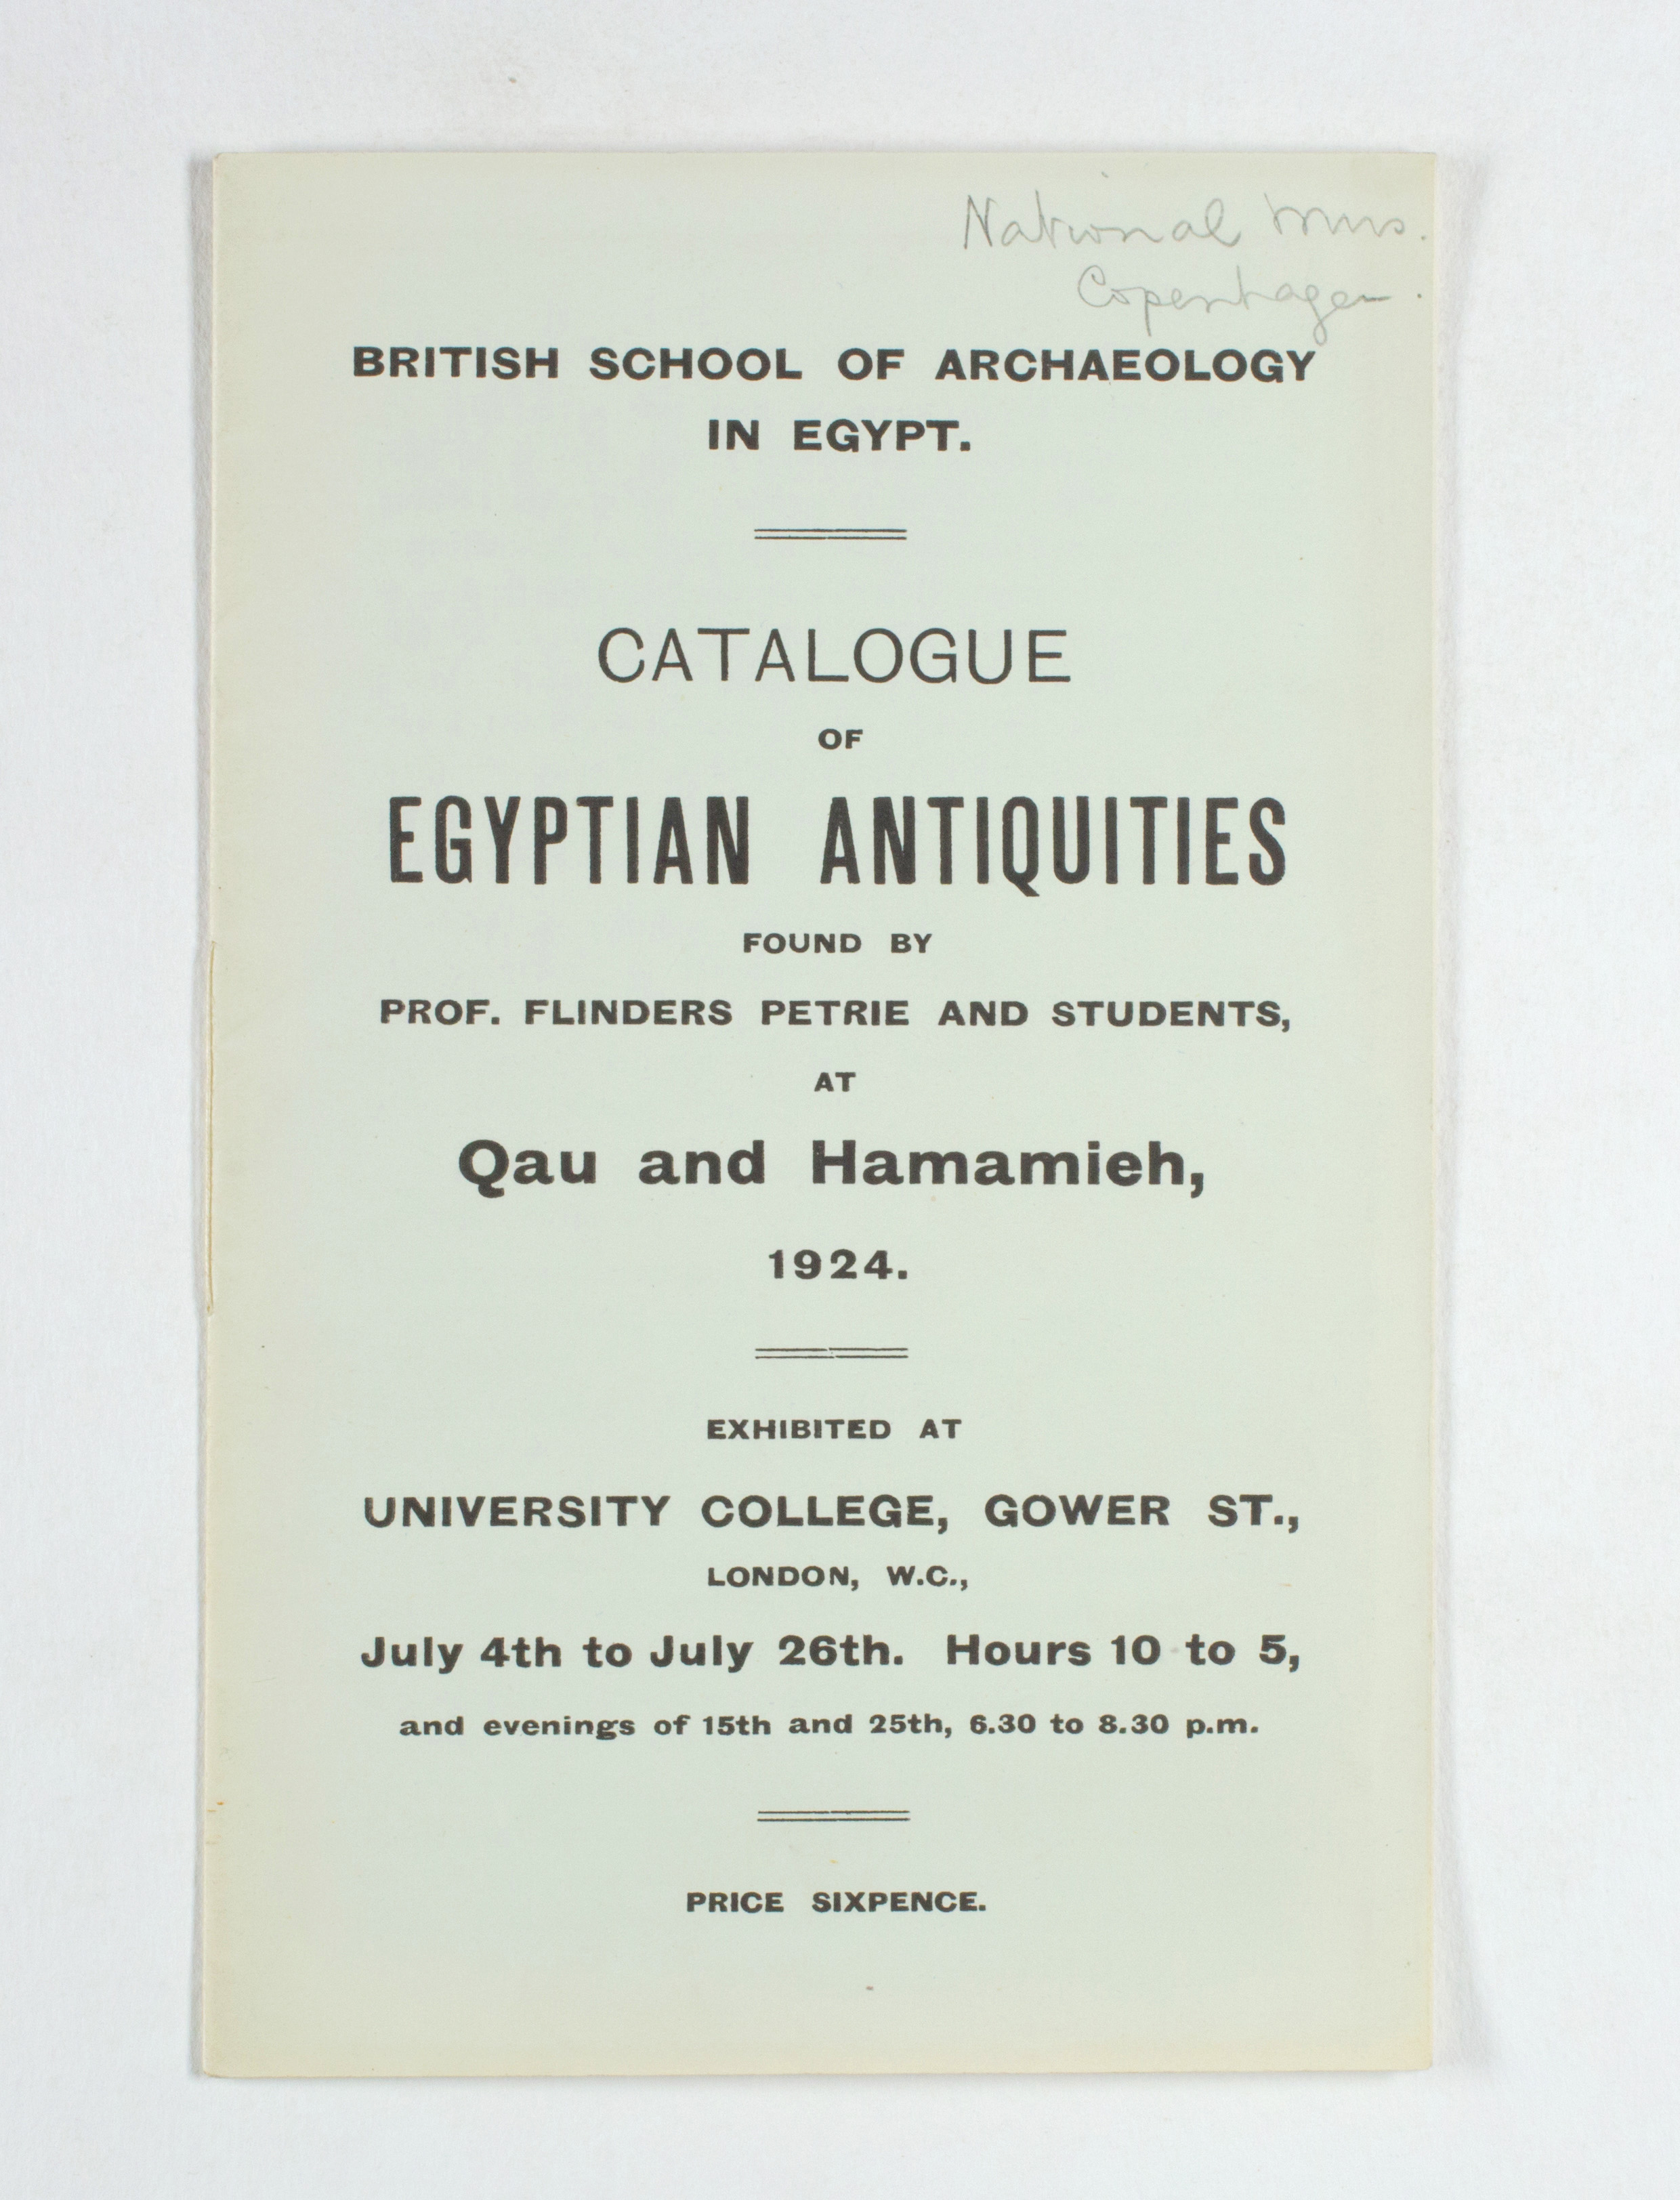 1923-24 Qau el-Kebir, Hemamieh Exhibition catalogue PMA/WFP1/D/27/30.1